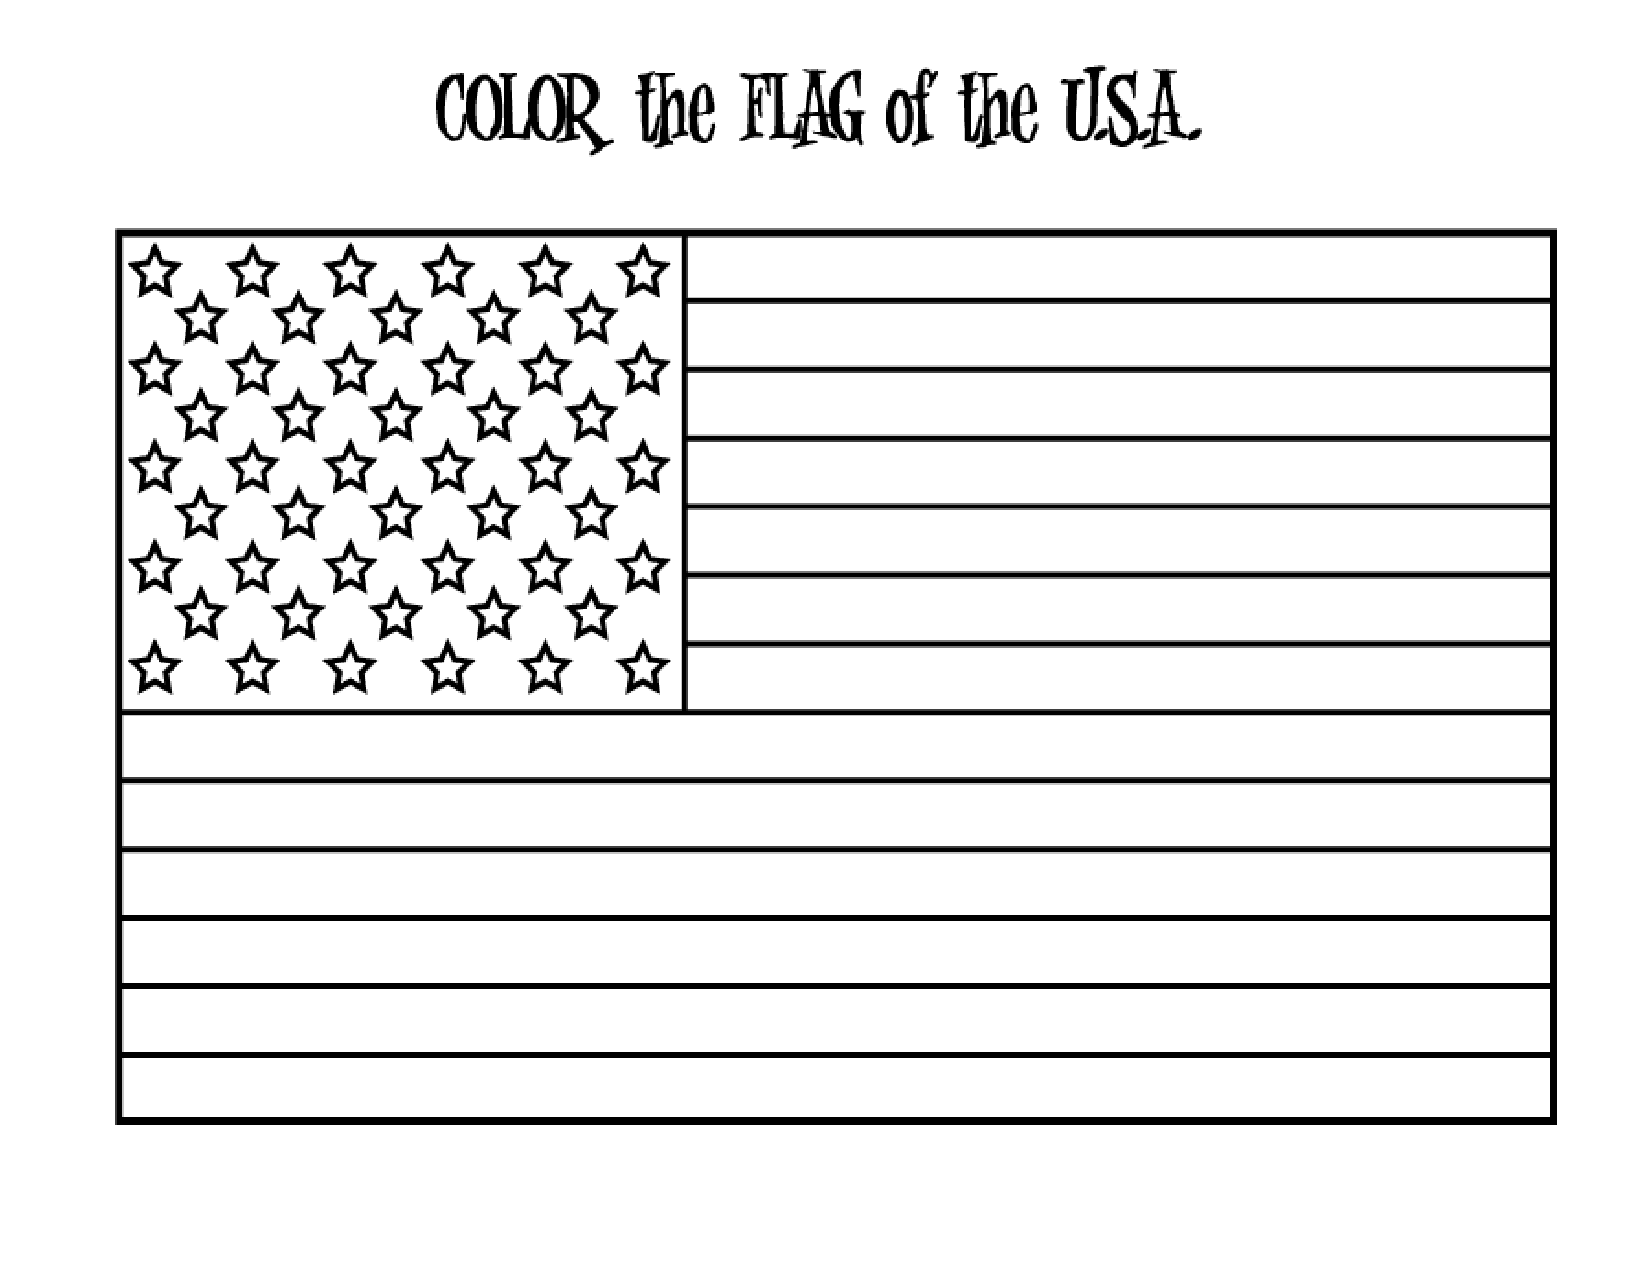 1776 american flag coloring page photo - 1